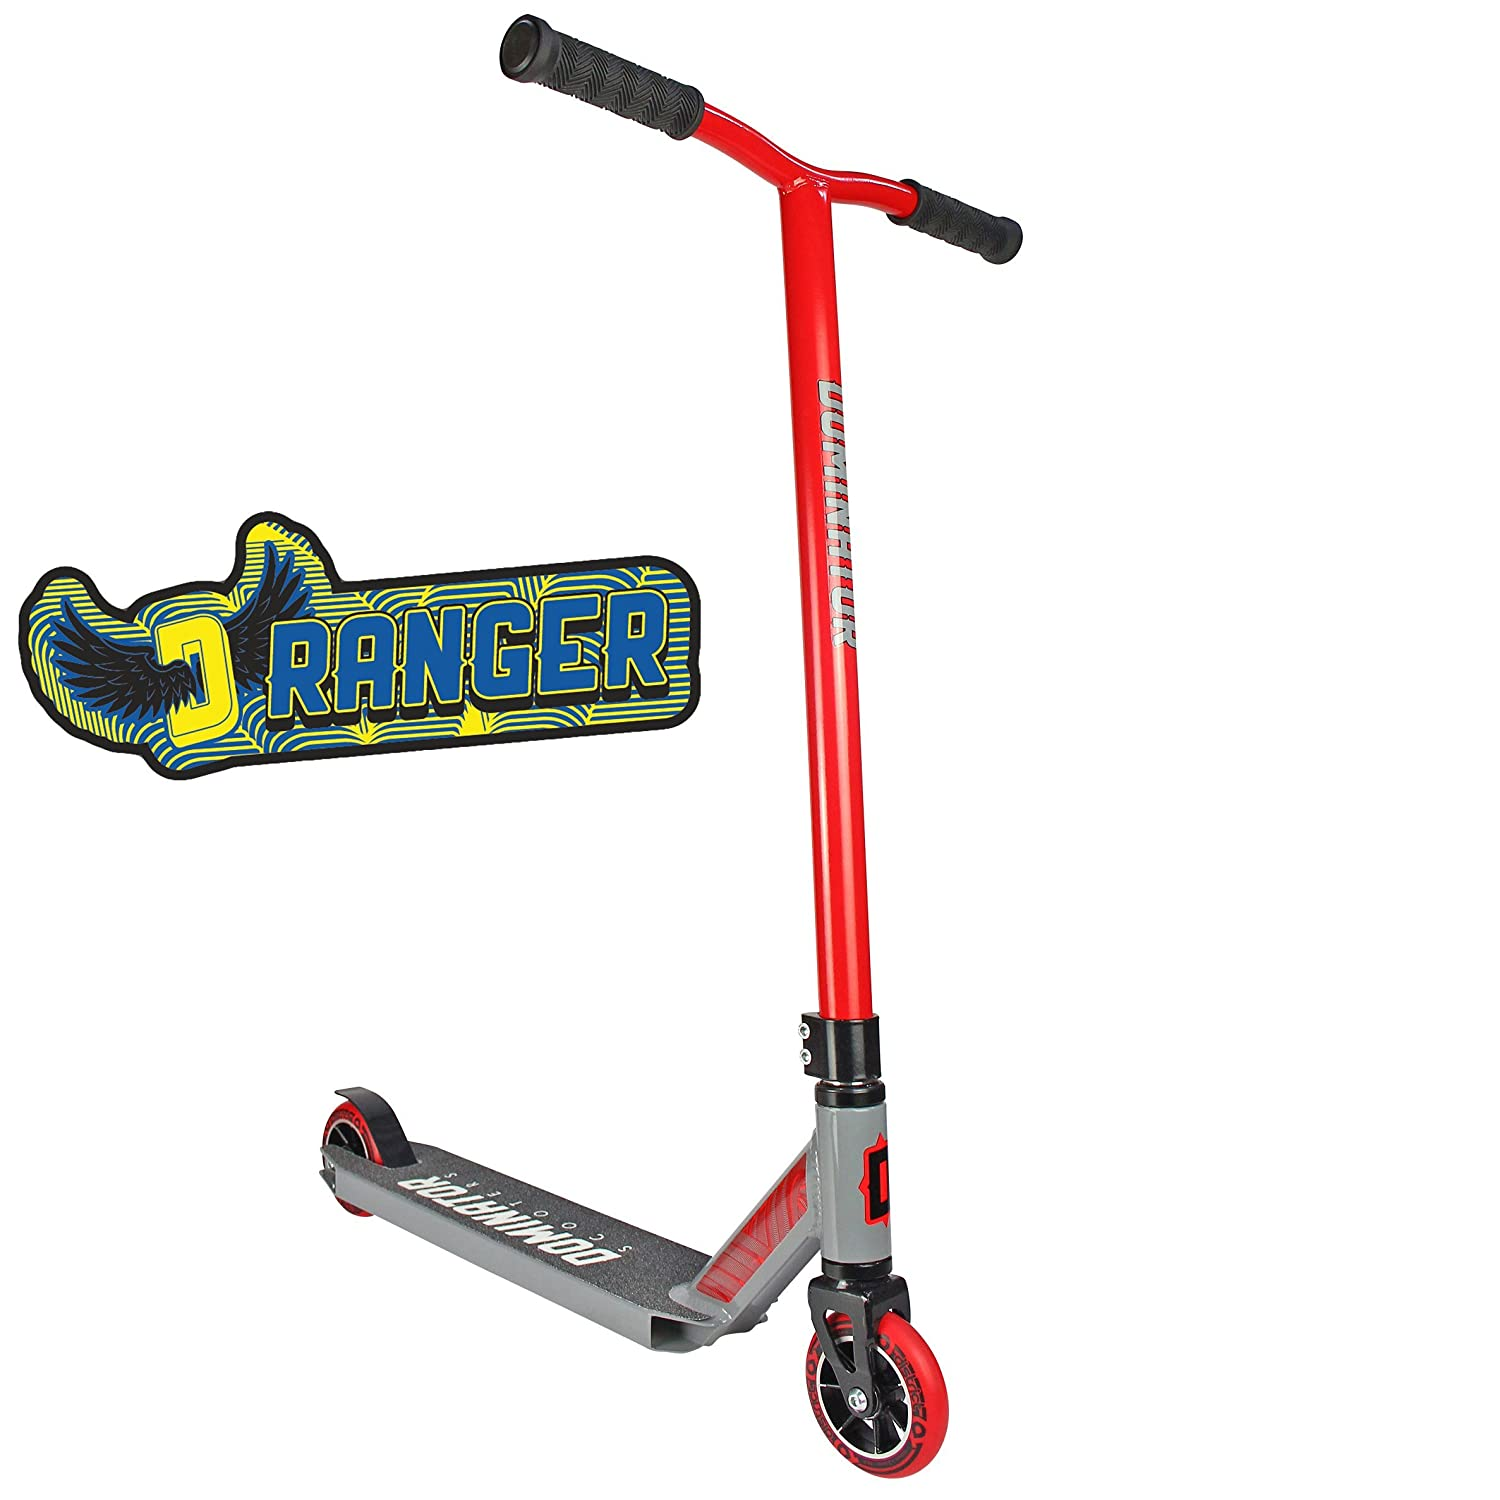 Dominator Ranger Pro Scooter - Stunt Scooter - Trick Scooter (Red/Grey) Dominator Scooters